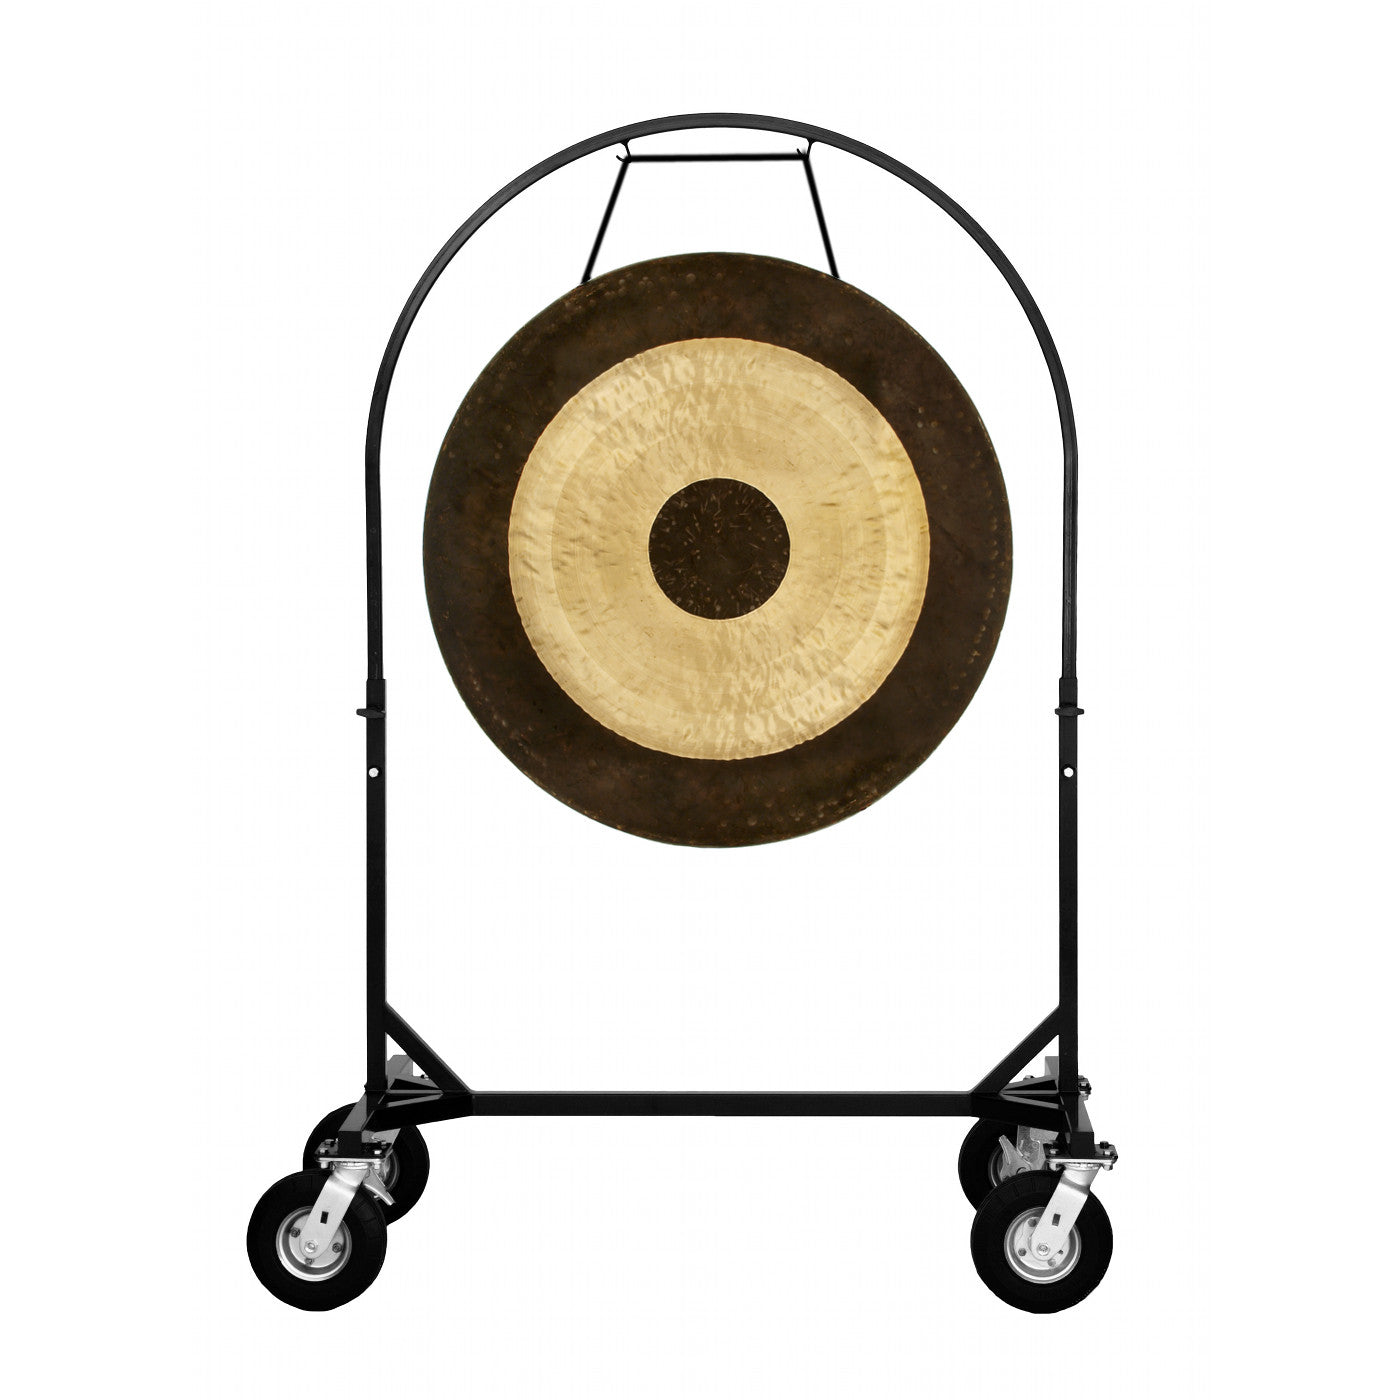 Gong Stand Designs : Gongs on metal stands tagged quot unlimited corps design